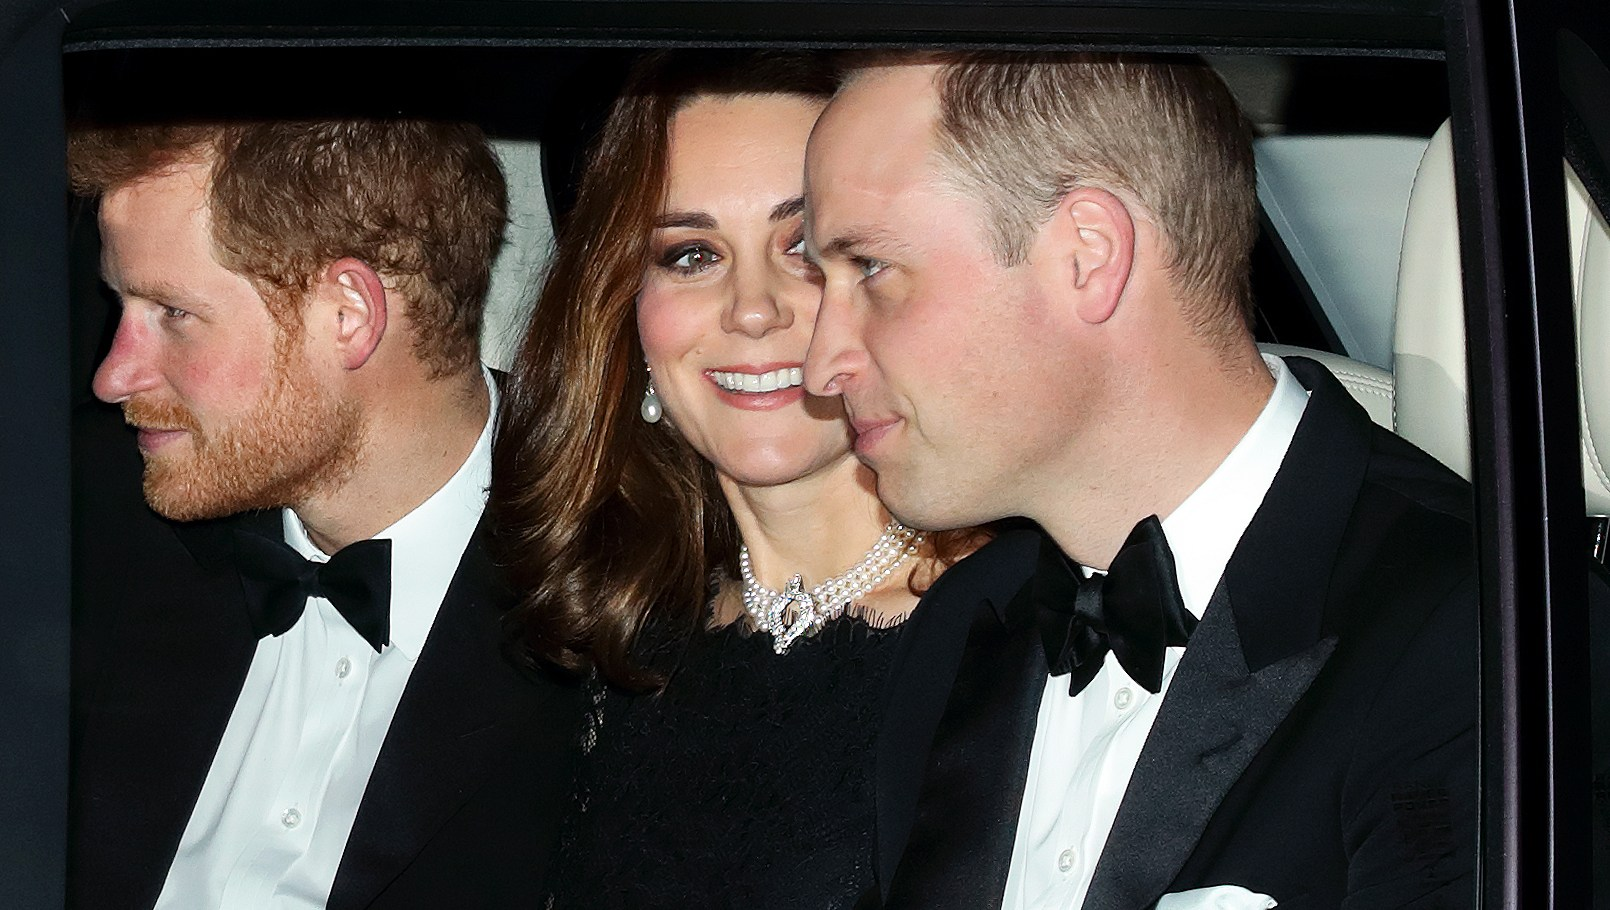 Prince Harry Kate Middleton Prince William wedding anniversary dinner